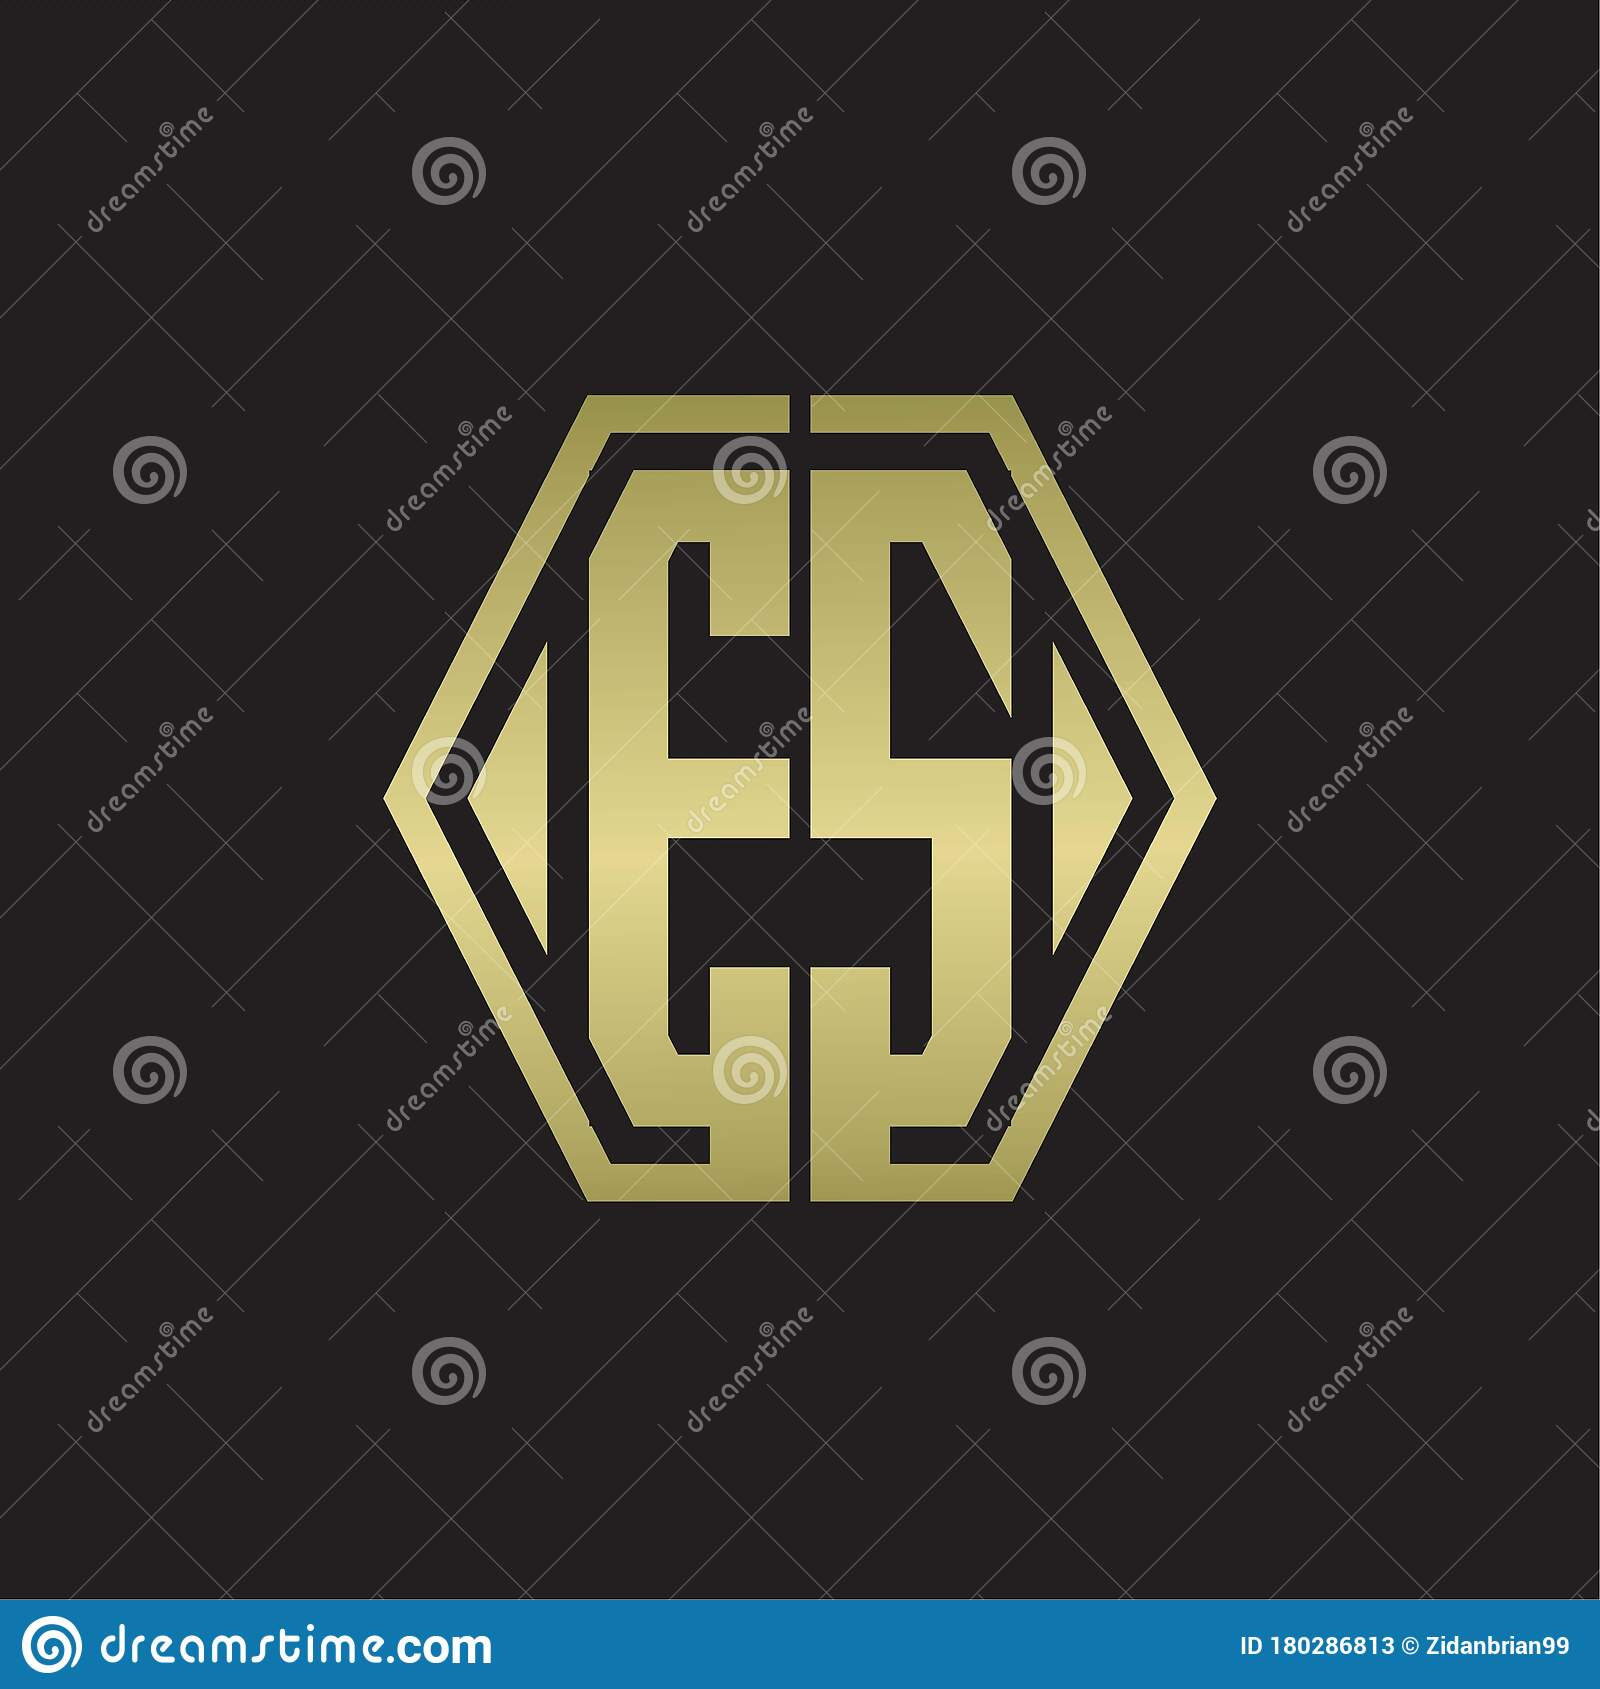 Es Logo Monogram With Hexagon Line Rounded Design Template With Gold Colors Stock Vector Illustration Of Initial Lettering 180286813